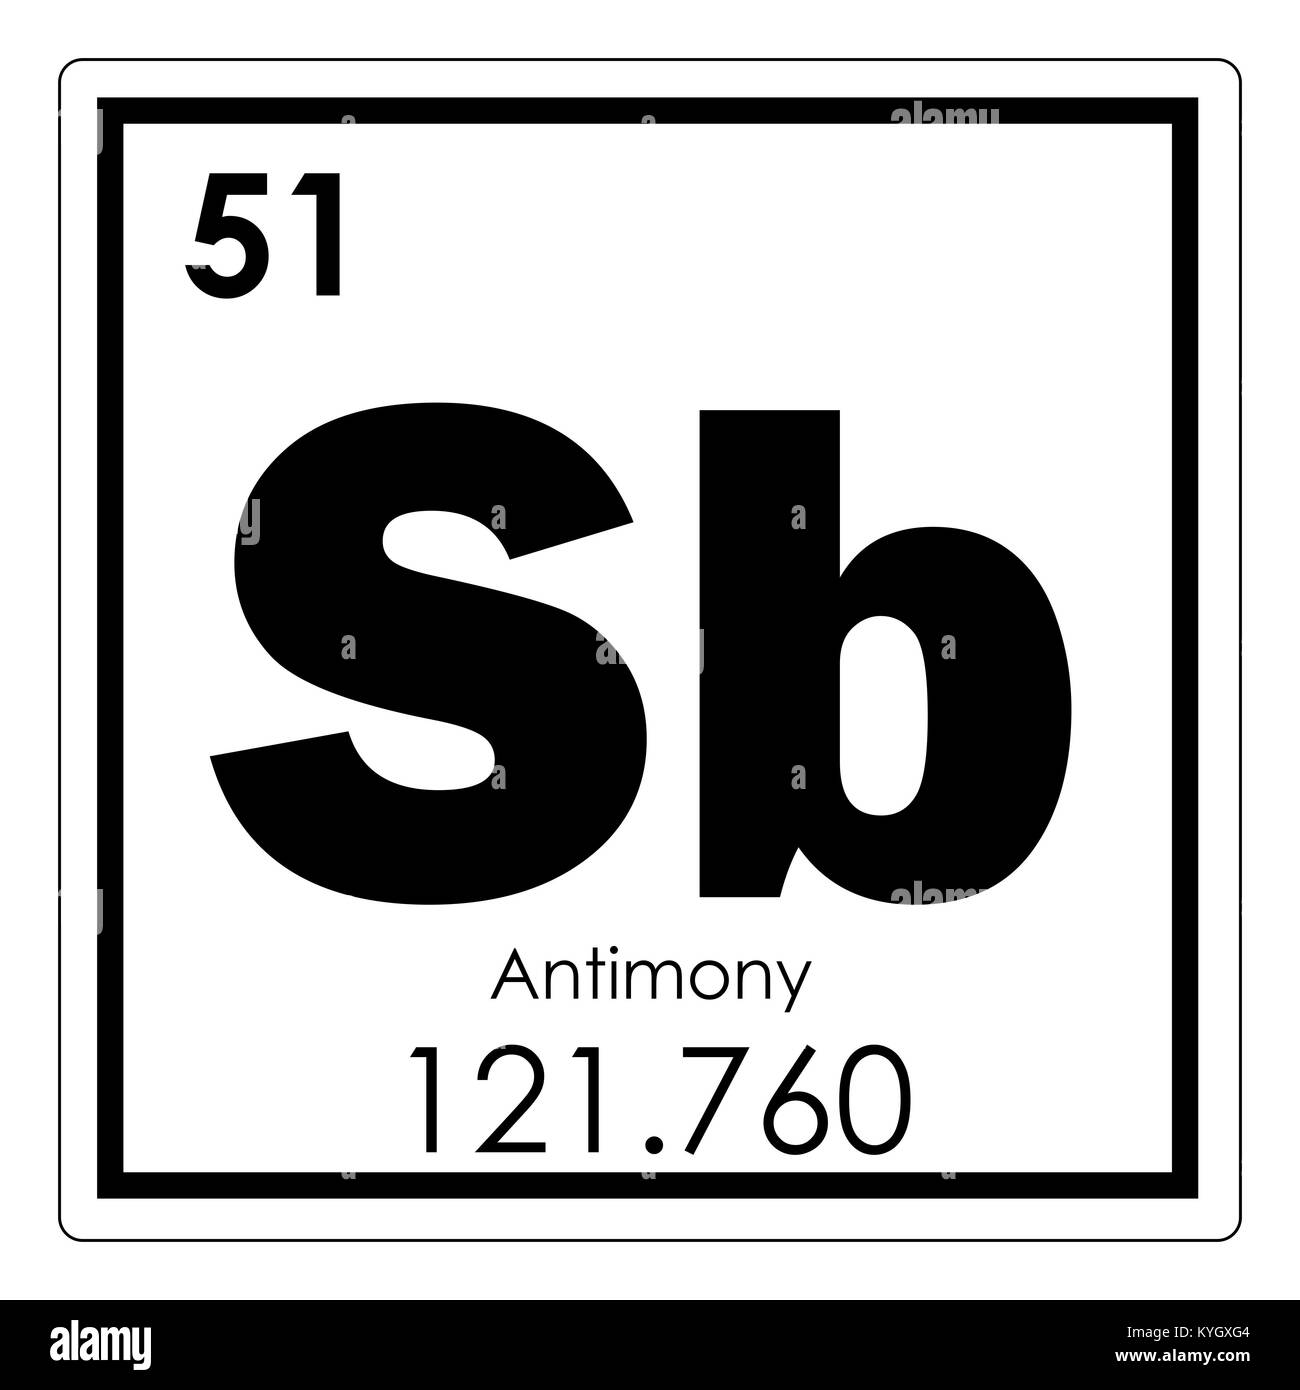 Periodic table symbol sb choice image periodic table and sample antimony chemical element periodic table science symbol stock photo antimony chemical element periodic table science symbol urtaz Gallery